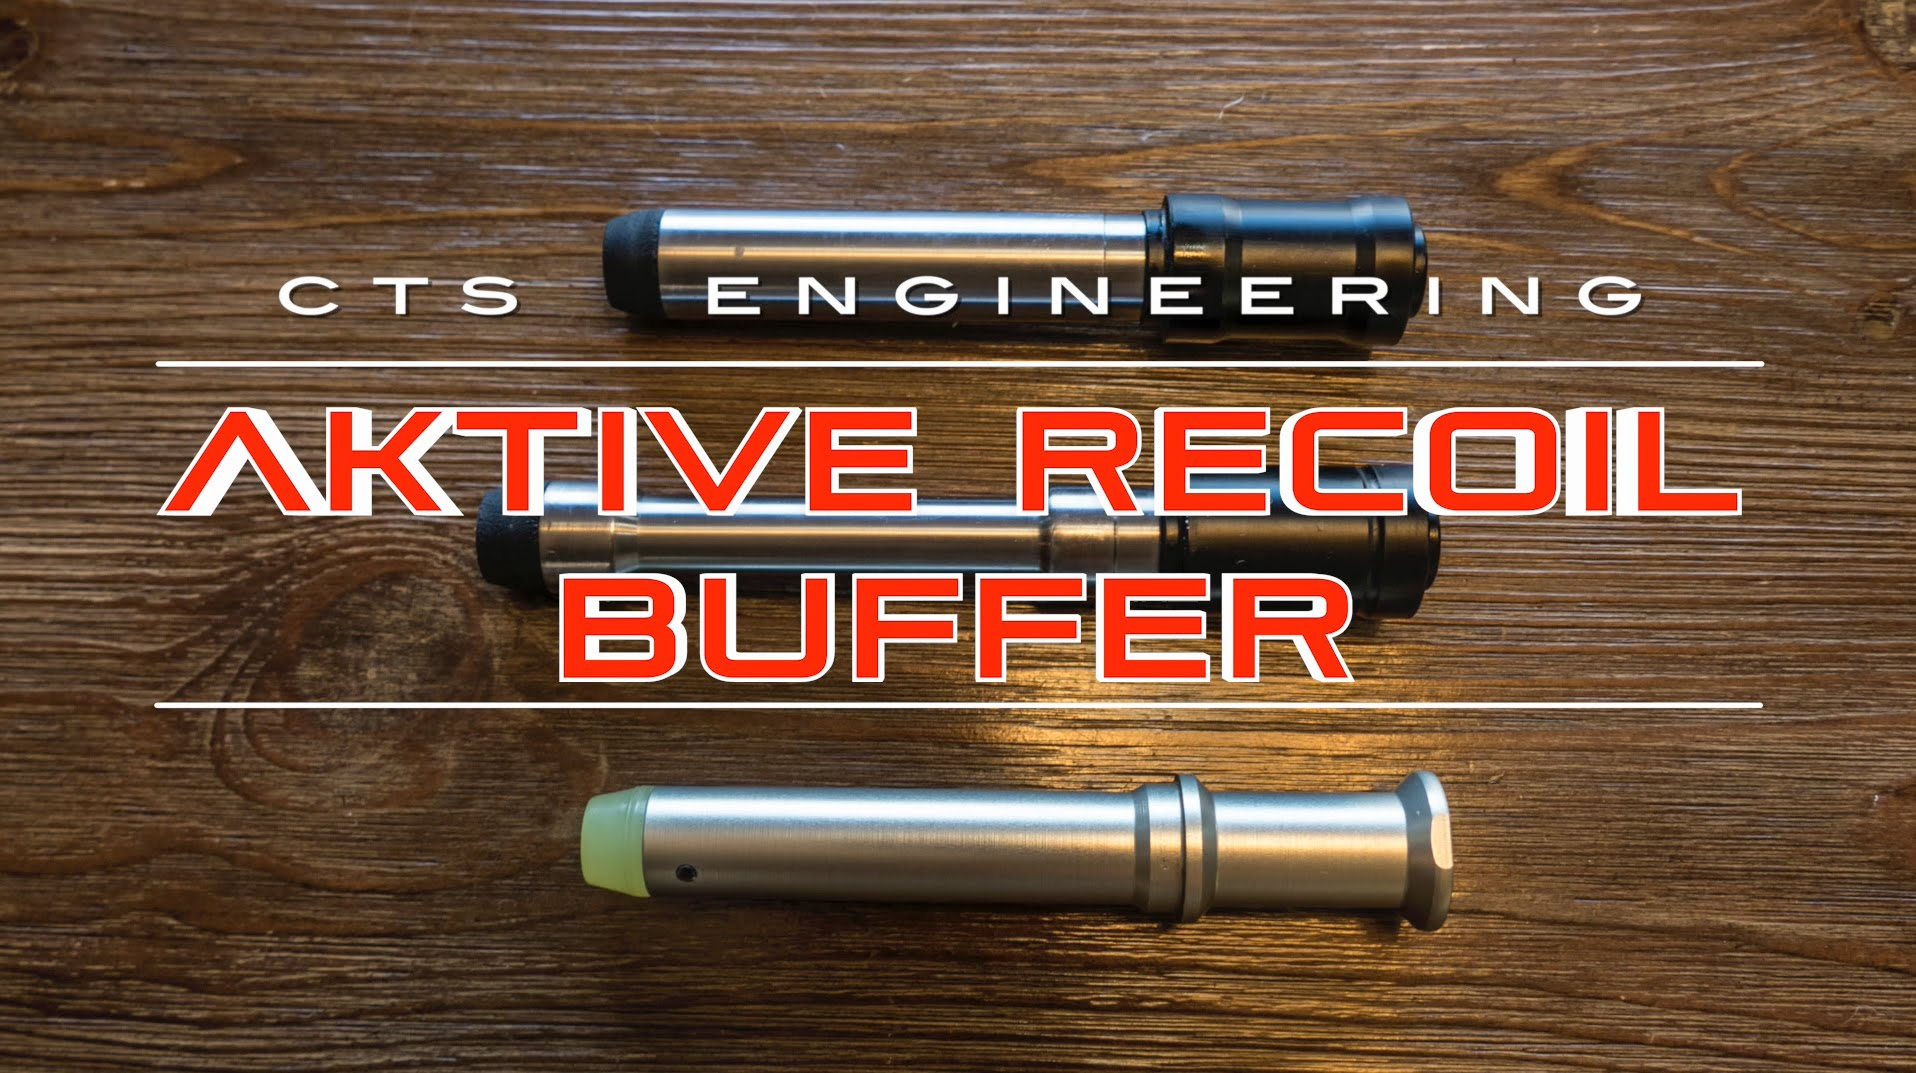 CTS Engineering - AKTIVE Recoil Buffer